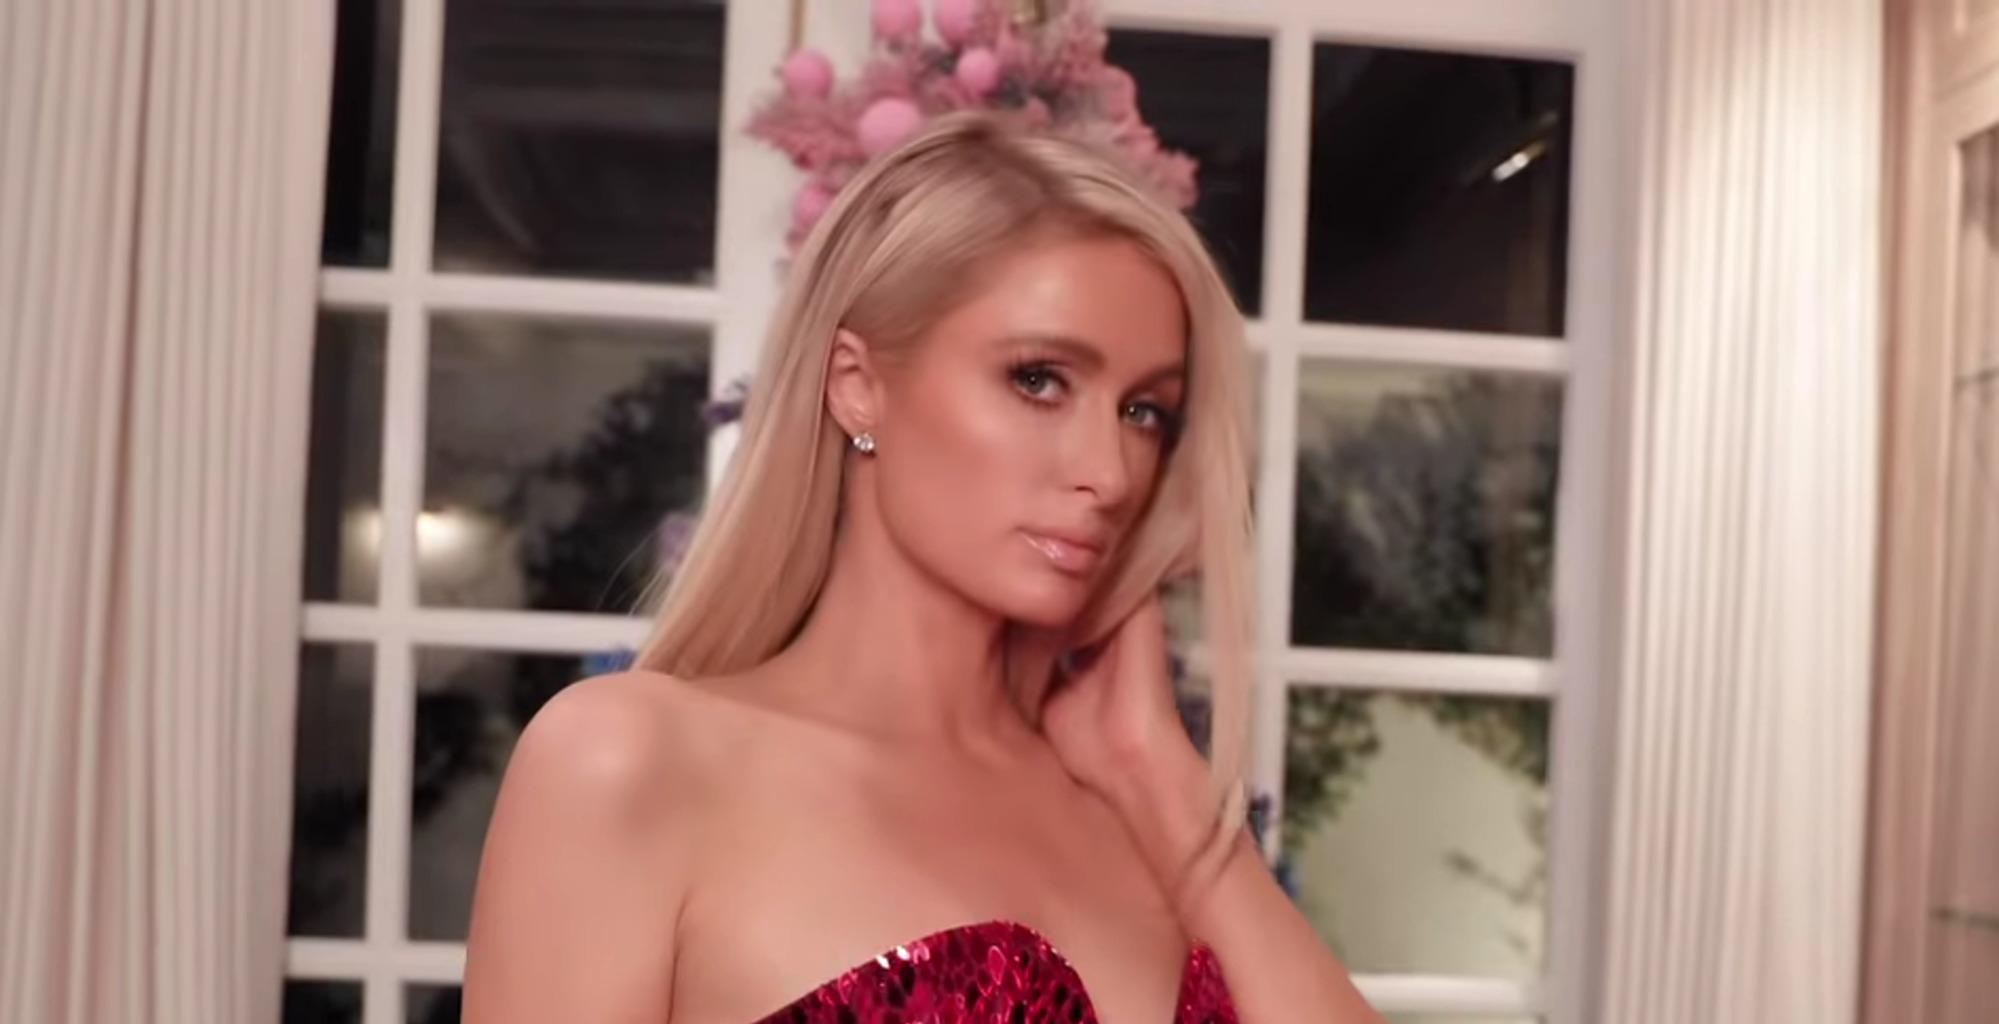 Paris Hilton Shows Off Her Favorite Holiday Looks In A Fashion Show Video